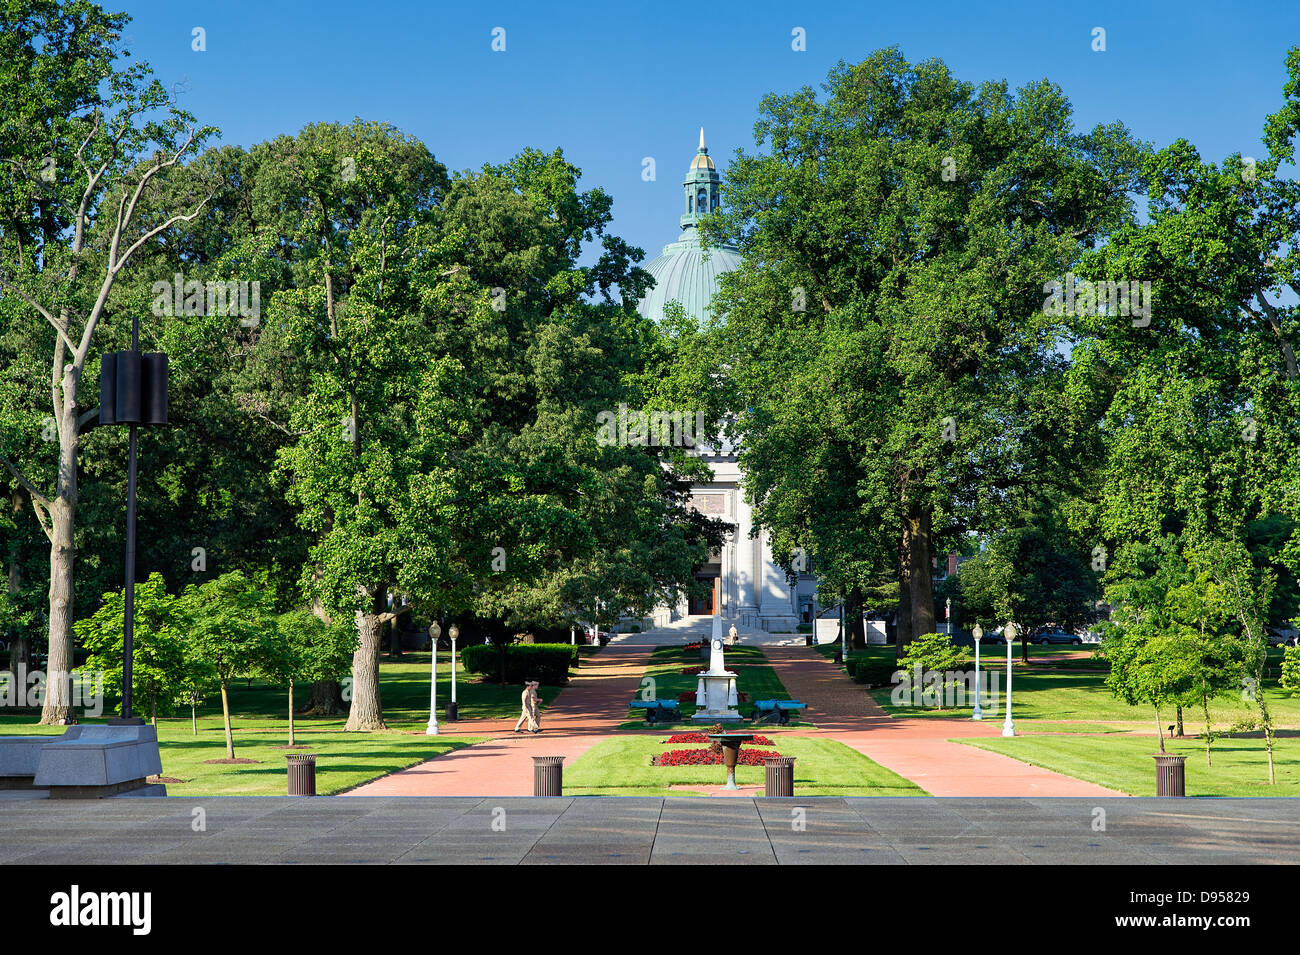 The United States Naval Academy Chapel, Annapolis, Maryland, USA. 1908 - Stock Image